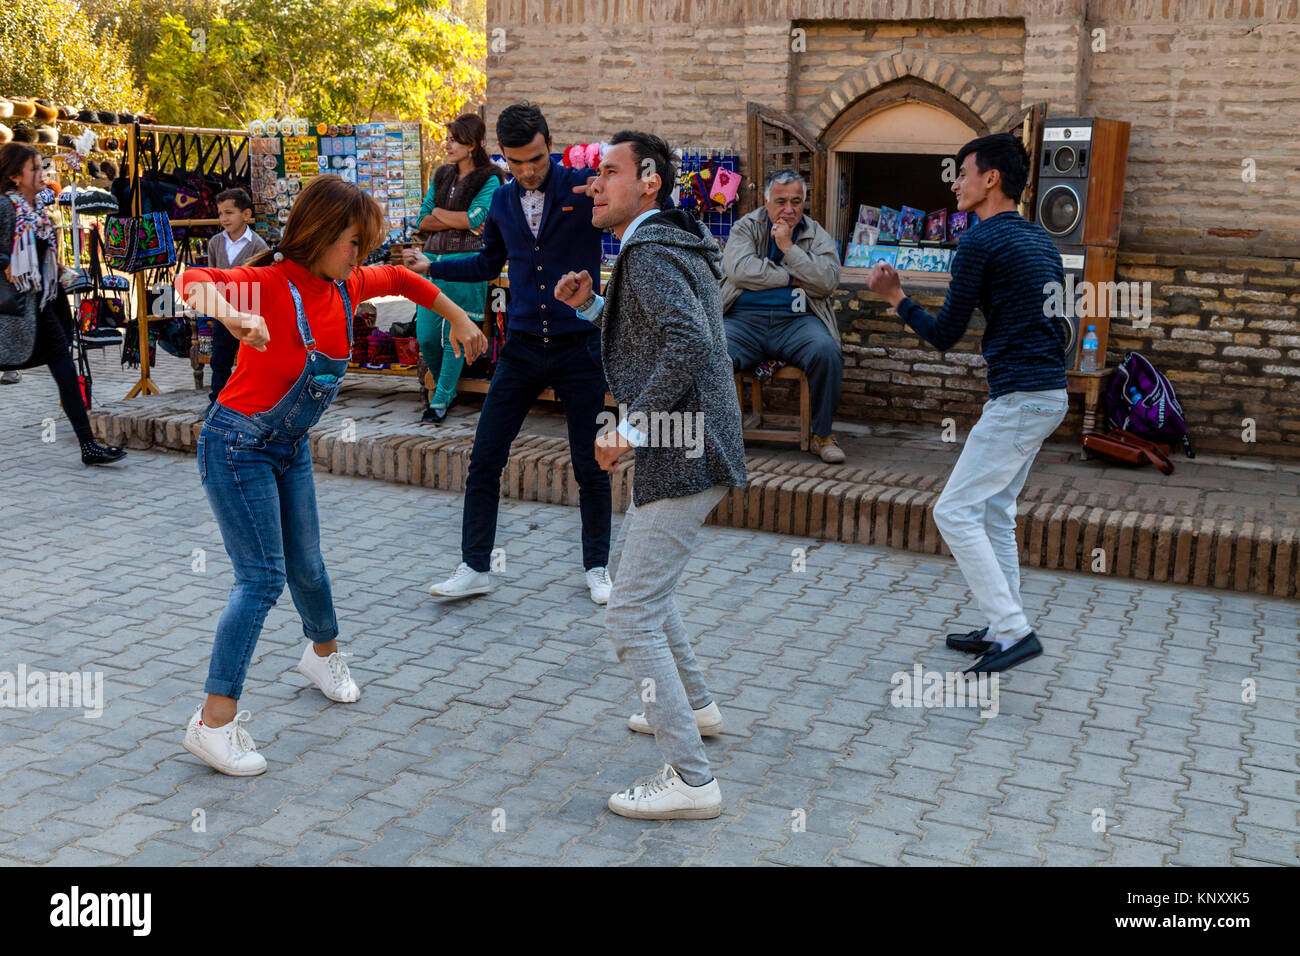 Uzbek People Dancing In The Street, Khiva, Uzbekistan - Stock Image